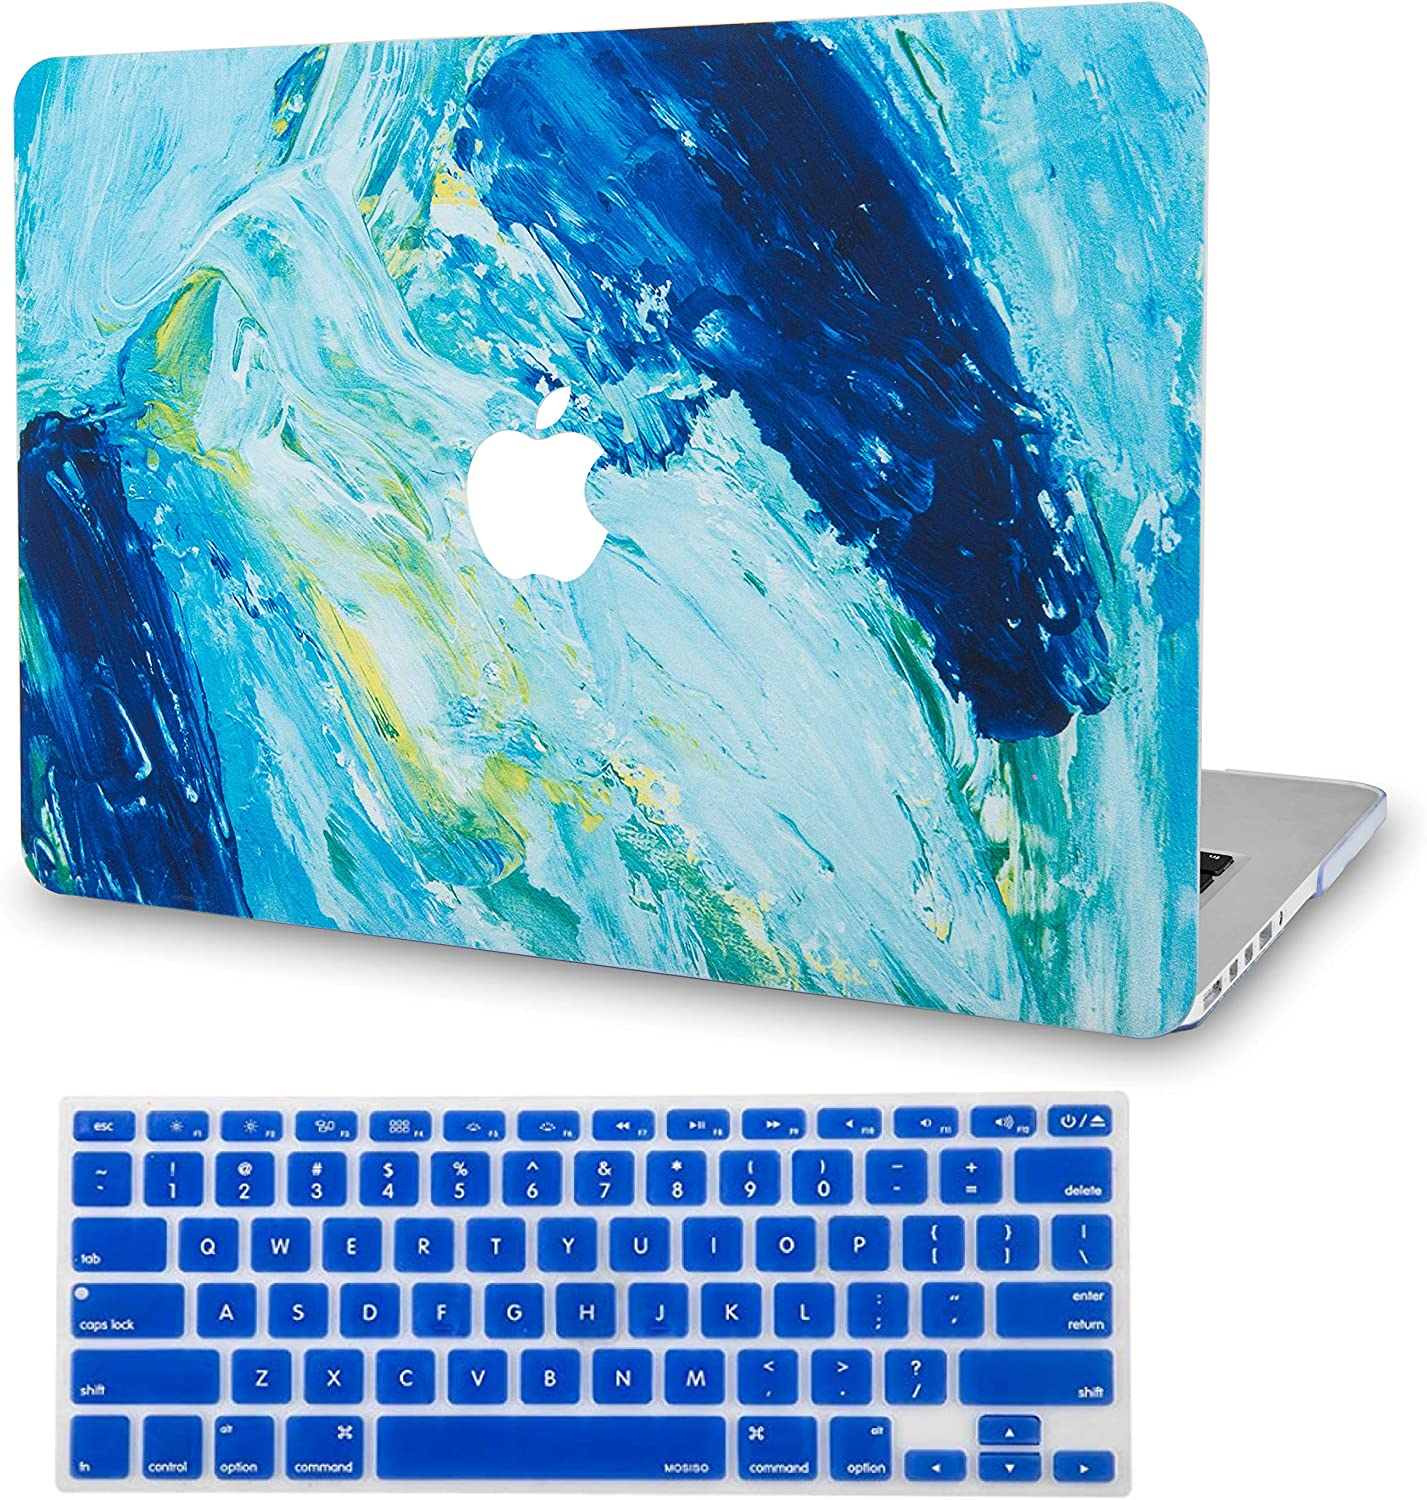 """LuvCase 2 in 1 Laptop Case for MacBook Pro 13"""" (2020) with Touch Bar A2251/A2289 Rubberized Plastic Hard Shell Cover & Keyboard Cover (Ocean)"""